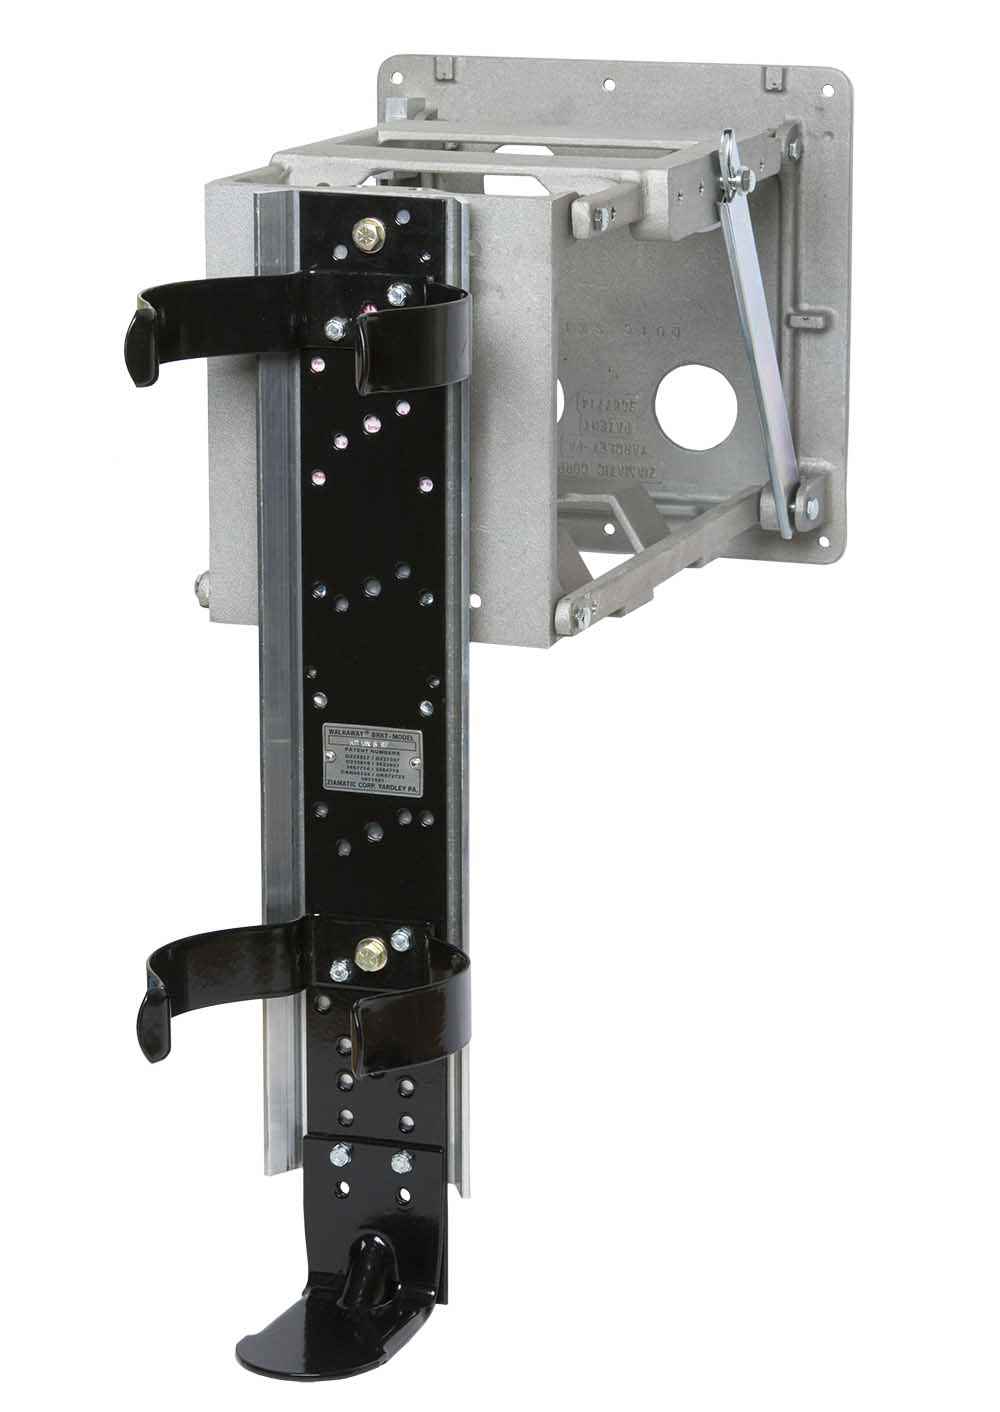 QUIC-SWING SCBA Bracket – Basic Swing-up